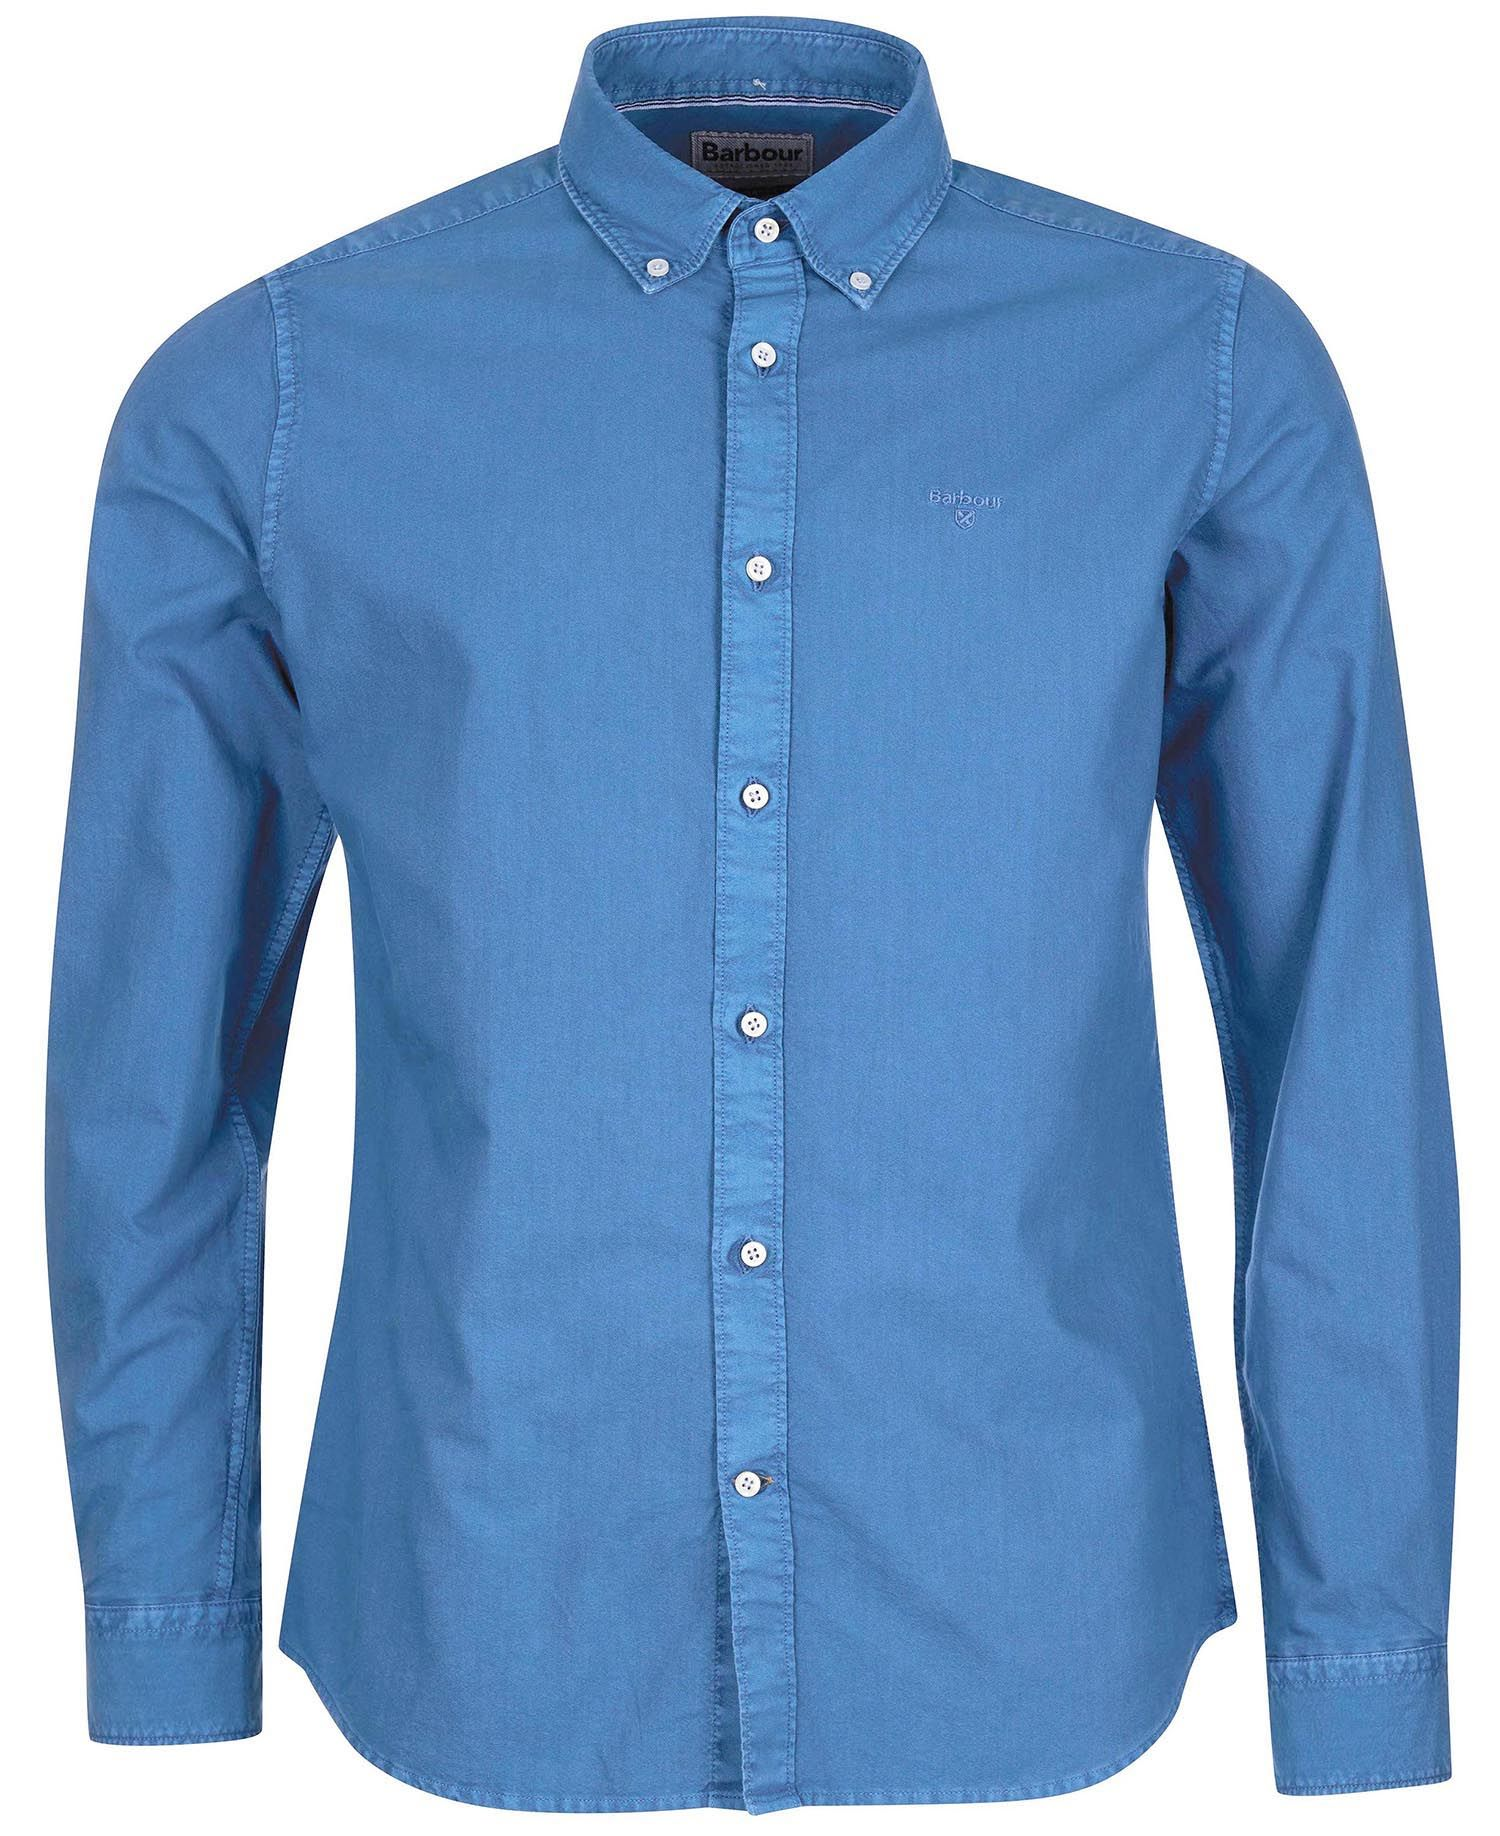 Barbour Barbour Oxford 13 Tailored Shirt Mid Blue FIT: Tailored